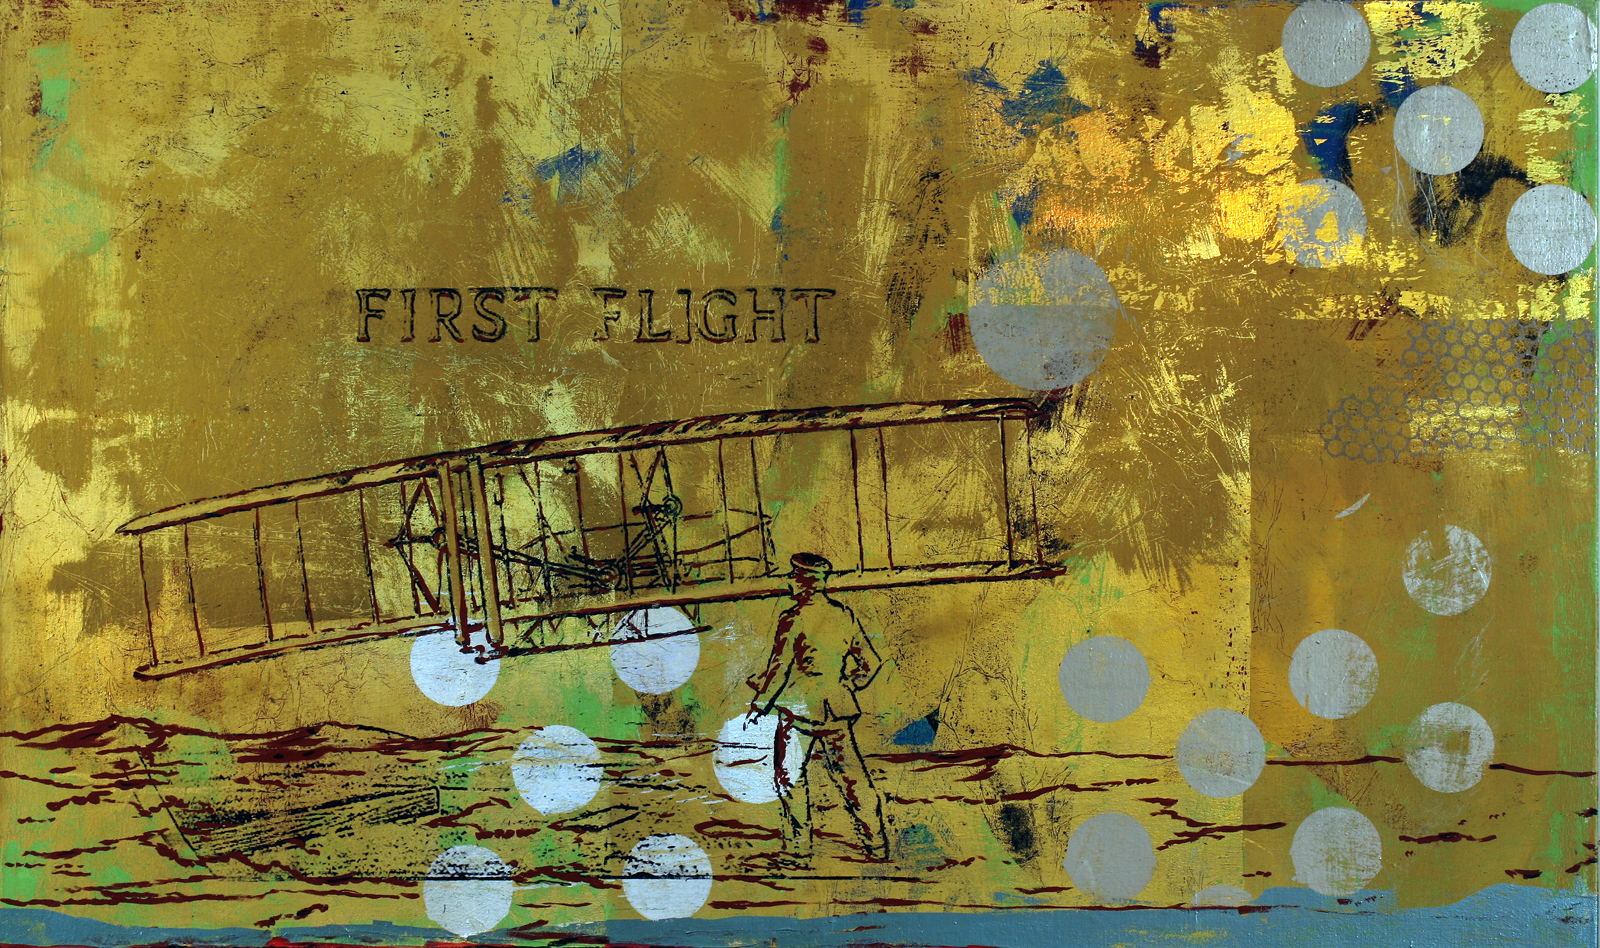 25 Cent North Carolina 36 by 60 acrylic and foil on canvas 2012 small